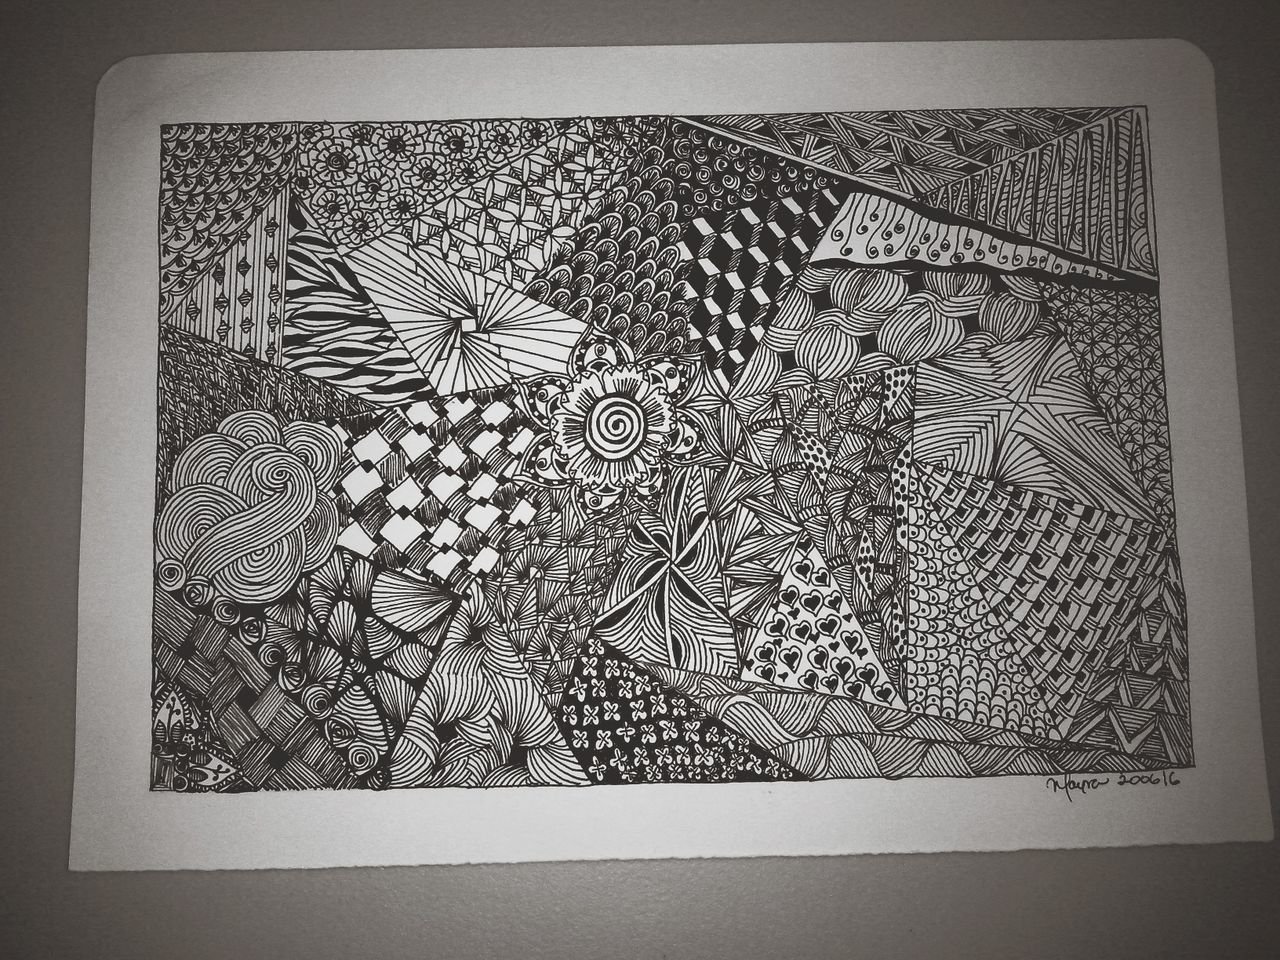 Draw Drawing Zentangle Zentangleart Patterns Black And White Black And White Collection  Creativity Art, Drawing, Creativity Being Inspired Inspired Eyeem Art Taking Photos